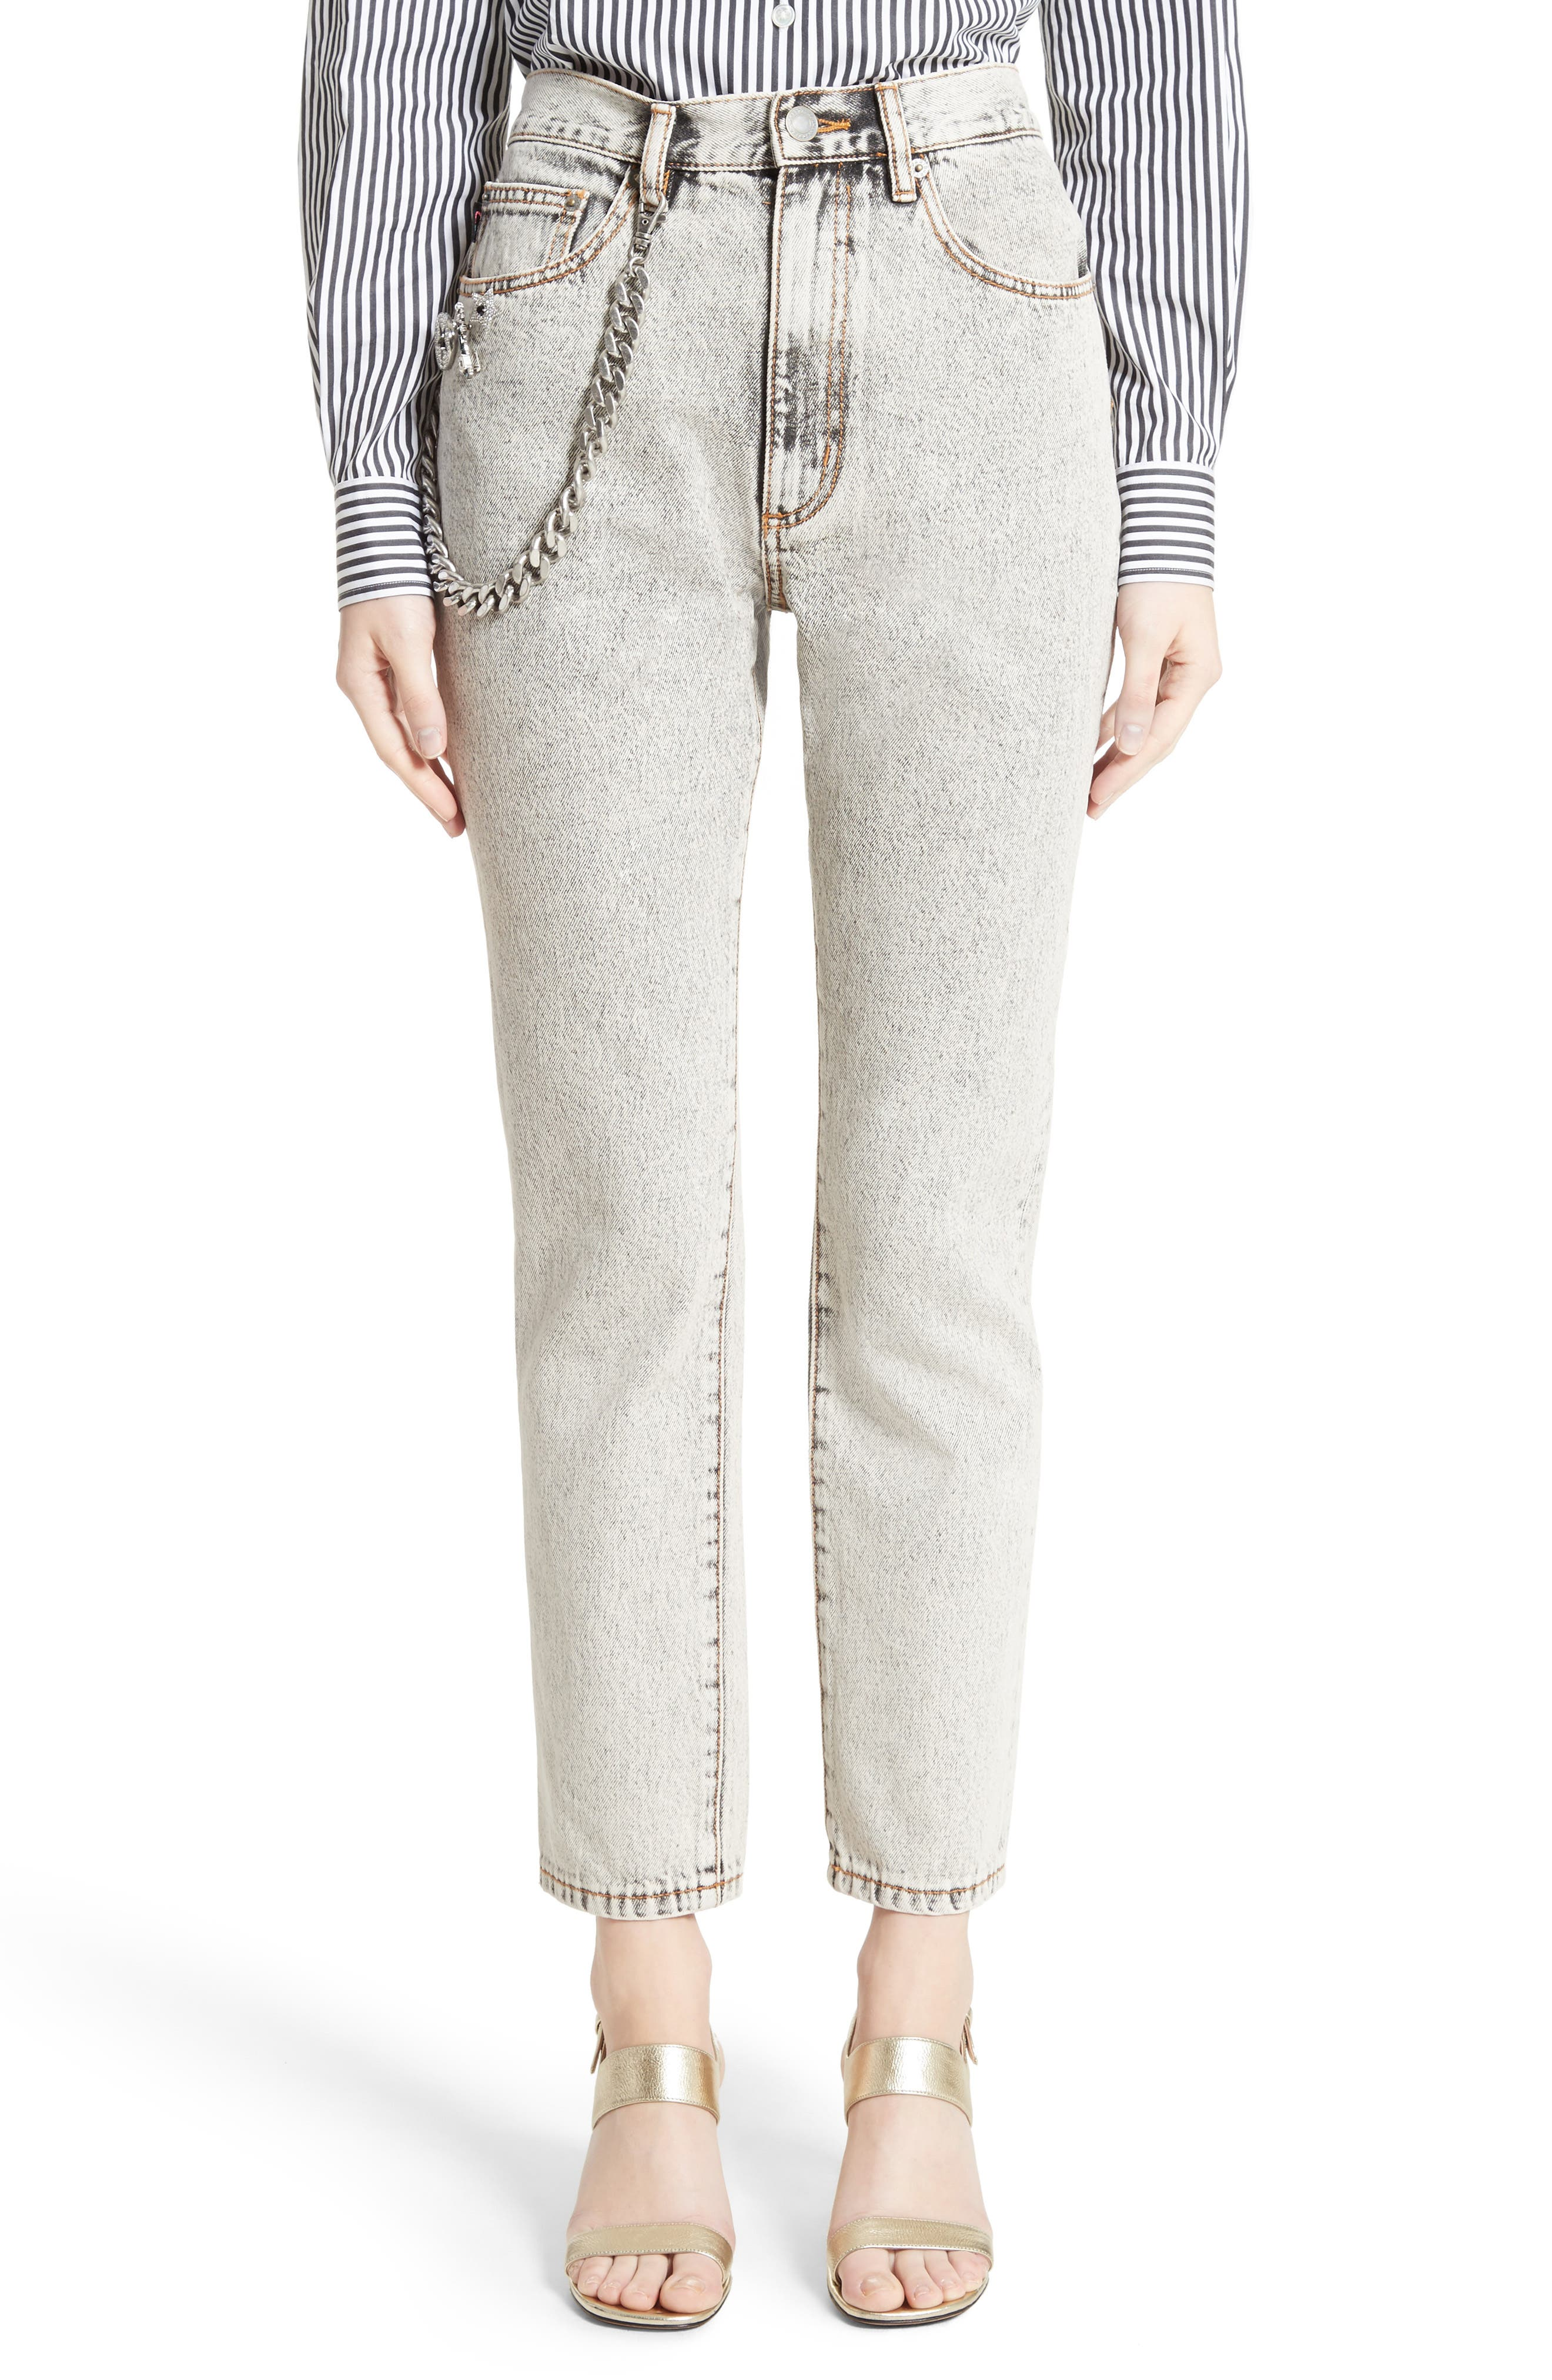 MARC JACOBS Overdyed Bleach Stovepipe Jeans